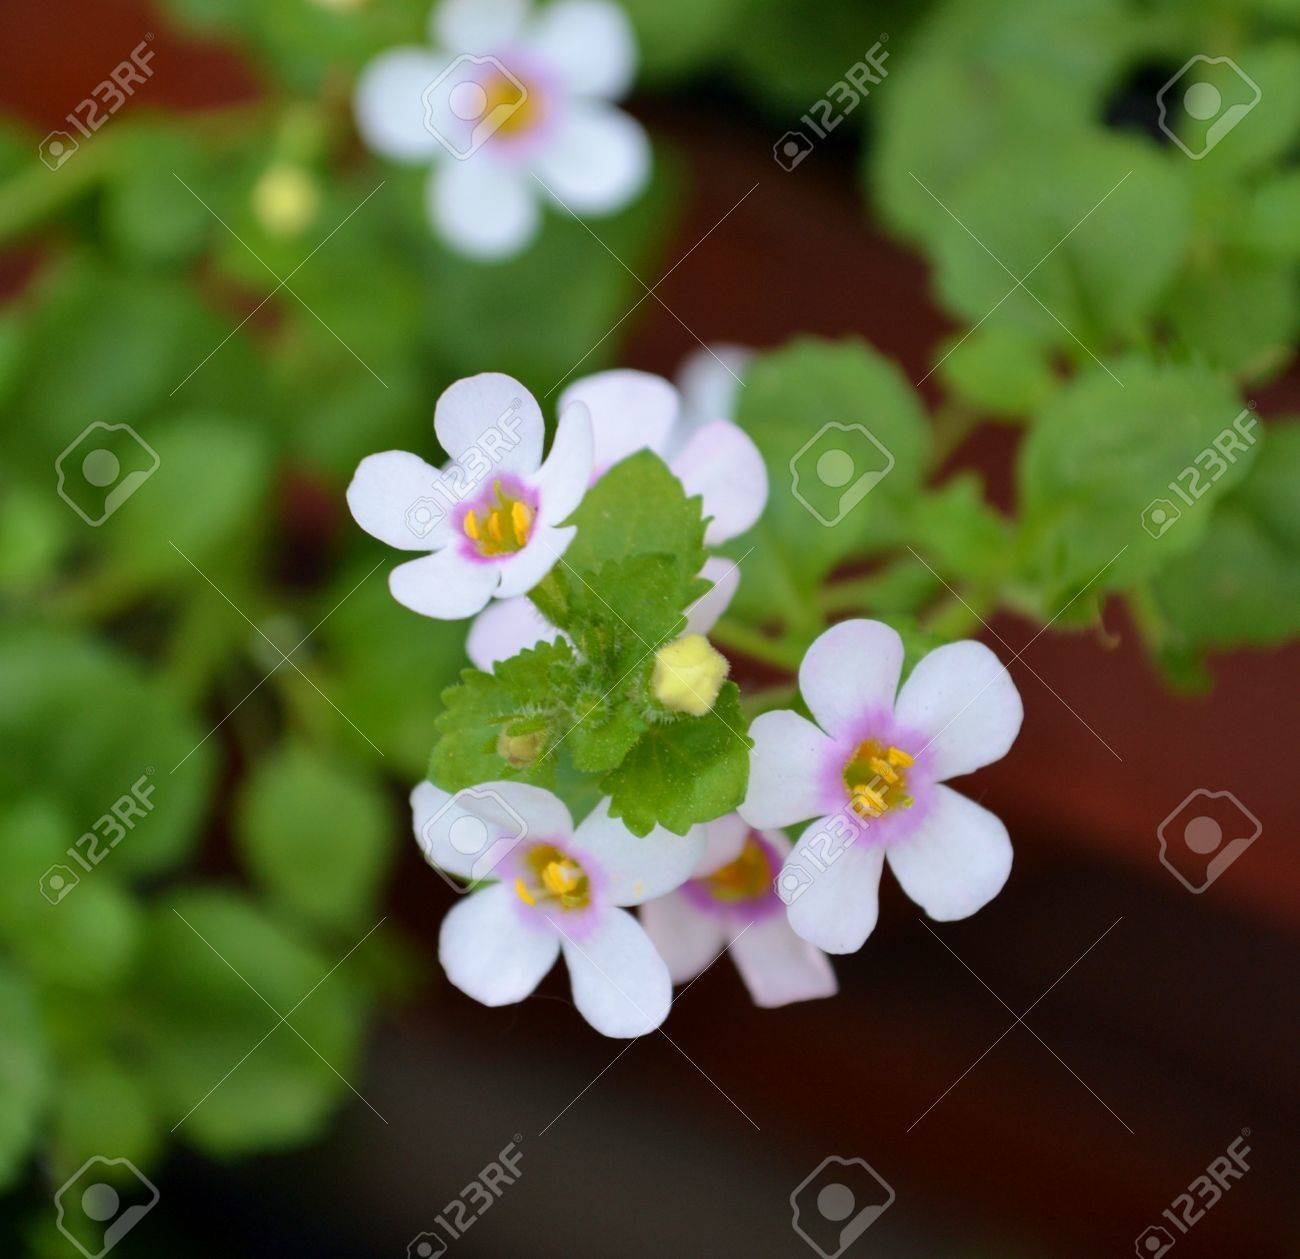 Small White Flowers With Pink Center Stock Photo Picture And